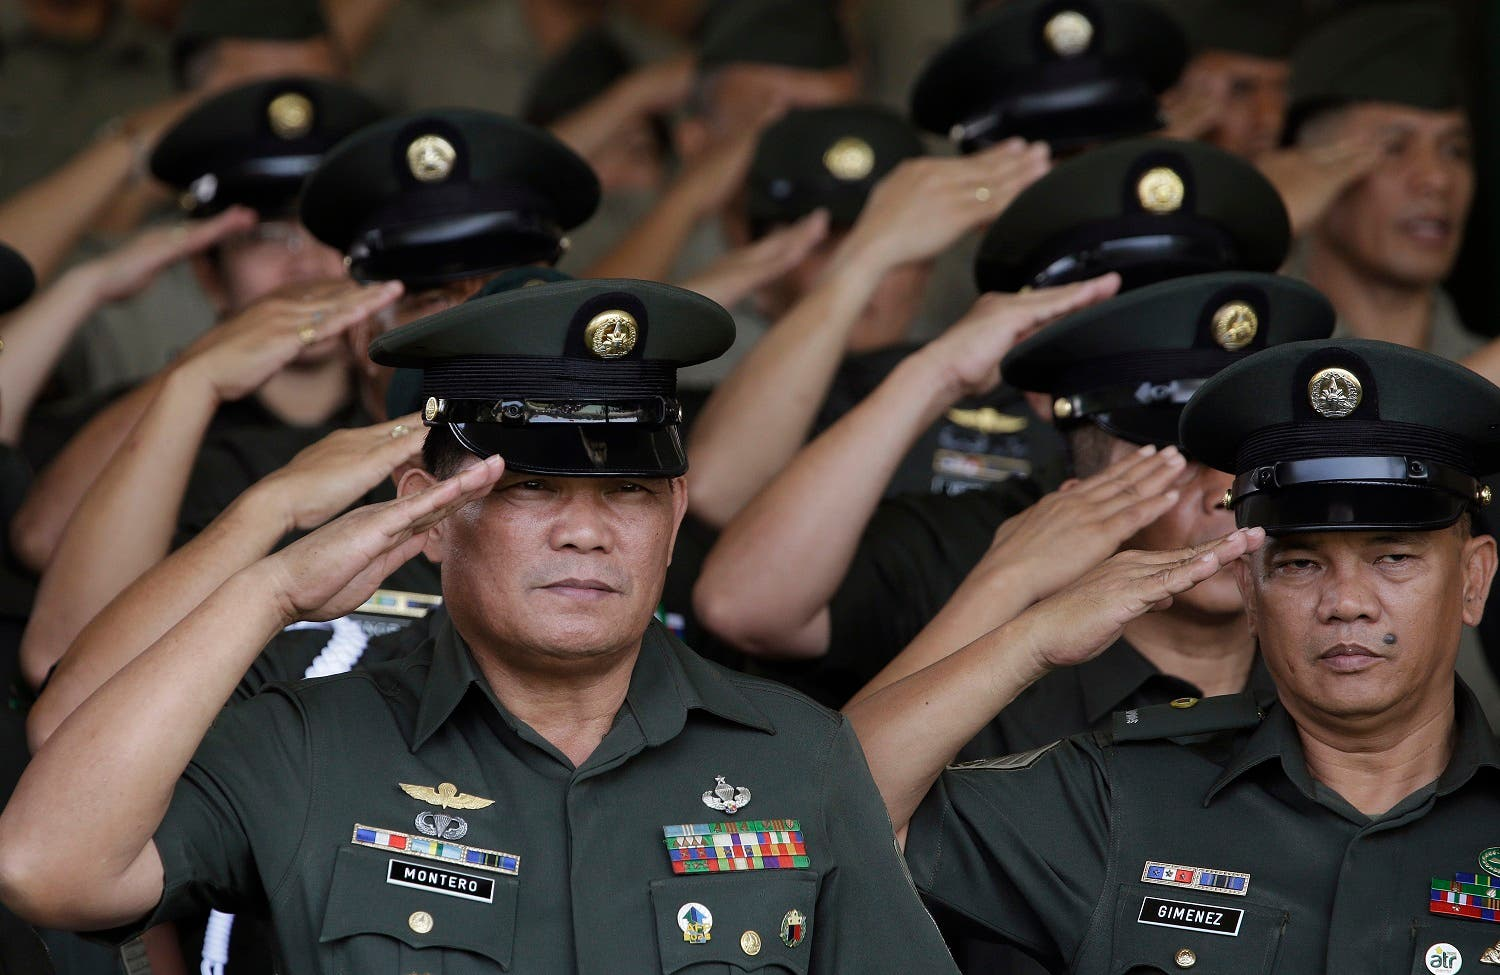 Philippine Army officers salute during ceremonies at the 119th founding anniversary of the Philippine Army in suburban Taguig, south of Manila, Philippines on Tuesday, March 22, 2016. Under the administration of Philippine President Benigno Aquino III, the Philippine military continues to it's modernization program as it deals with major security concerns, including Communist and Muslim insurgencies and South China Sea territorial disputes involving China, the Philippines and four other governments. (File photo: AP)